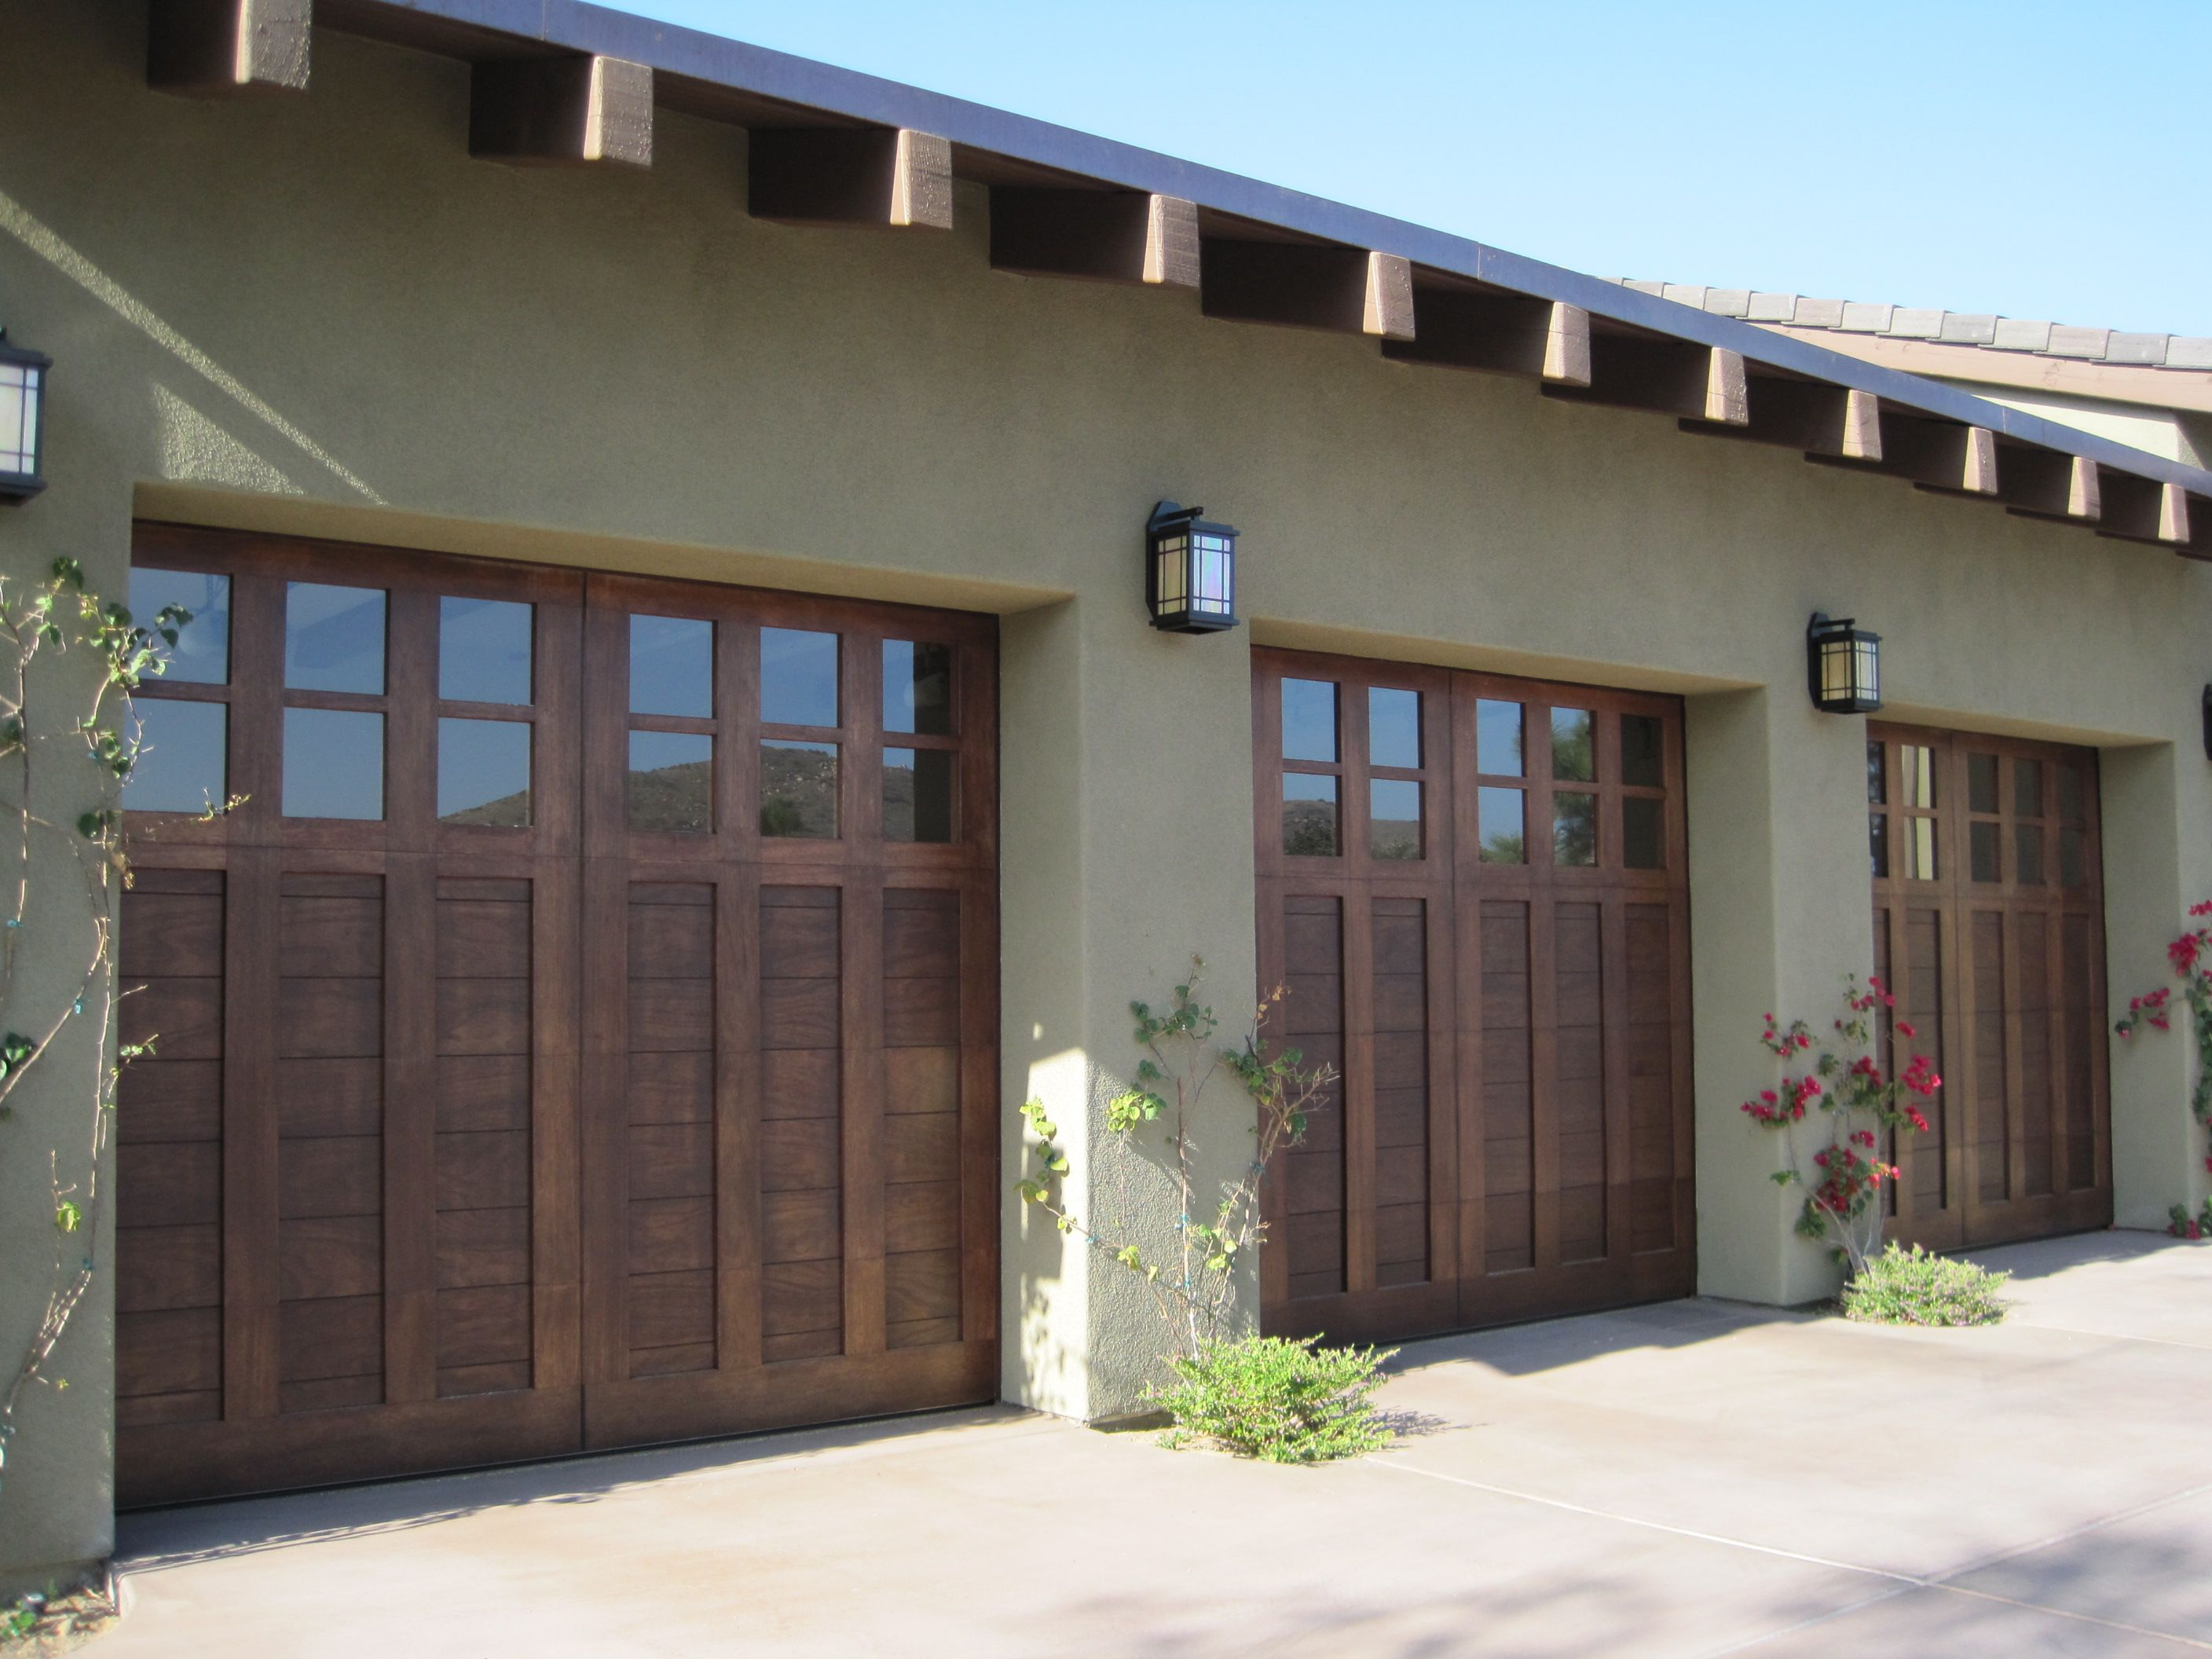 Beautiful Ranch House Garage Doors #8: Stunning Door Styles For Ranch Homes 47 In Interior Designing Home .